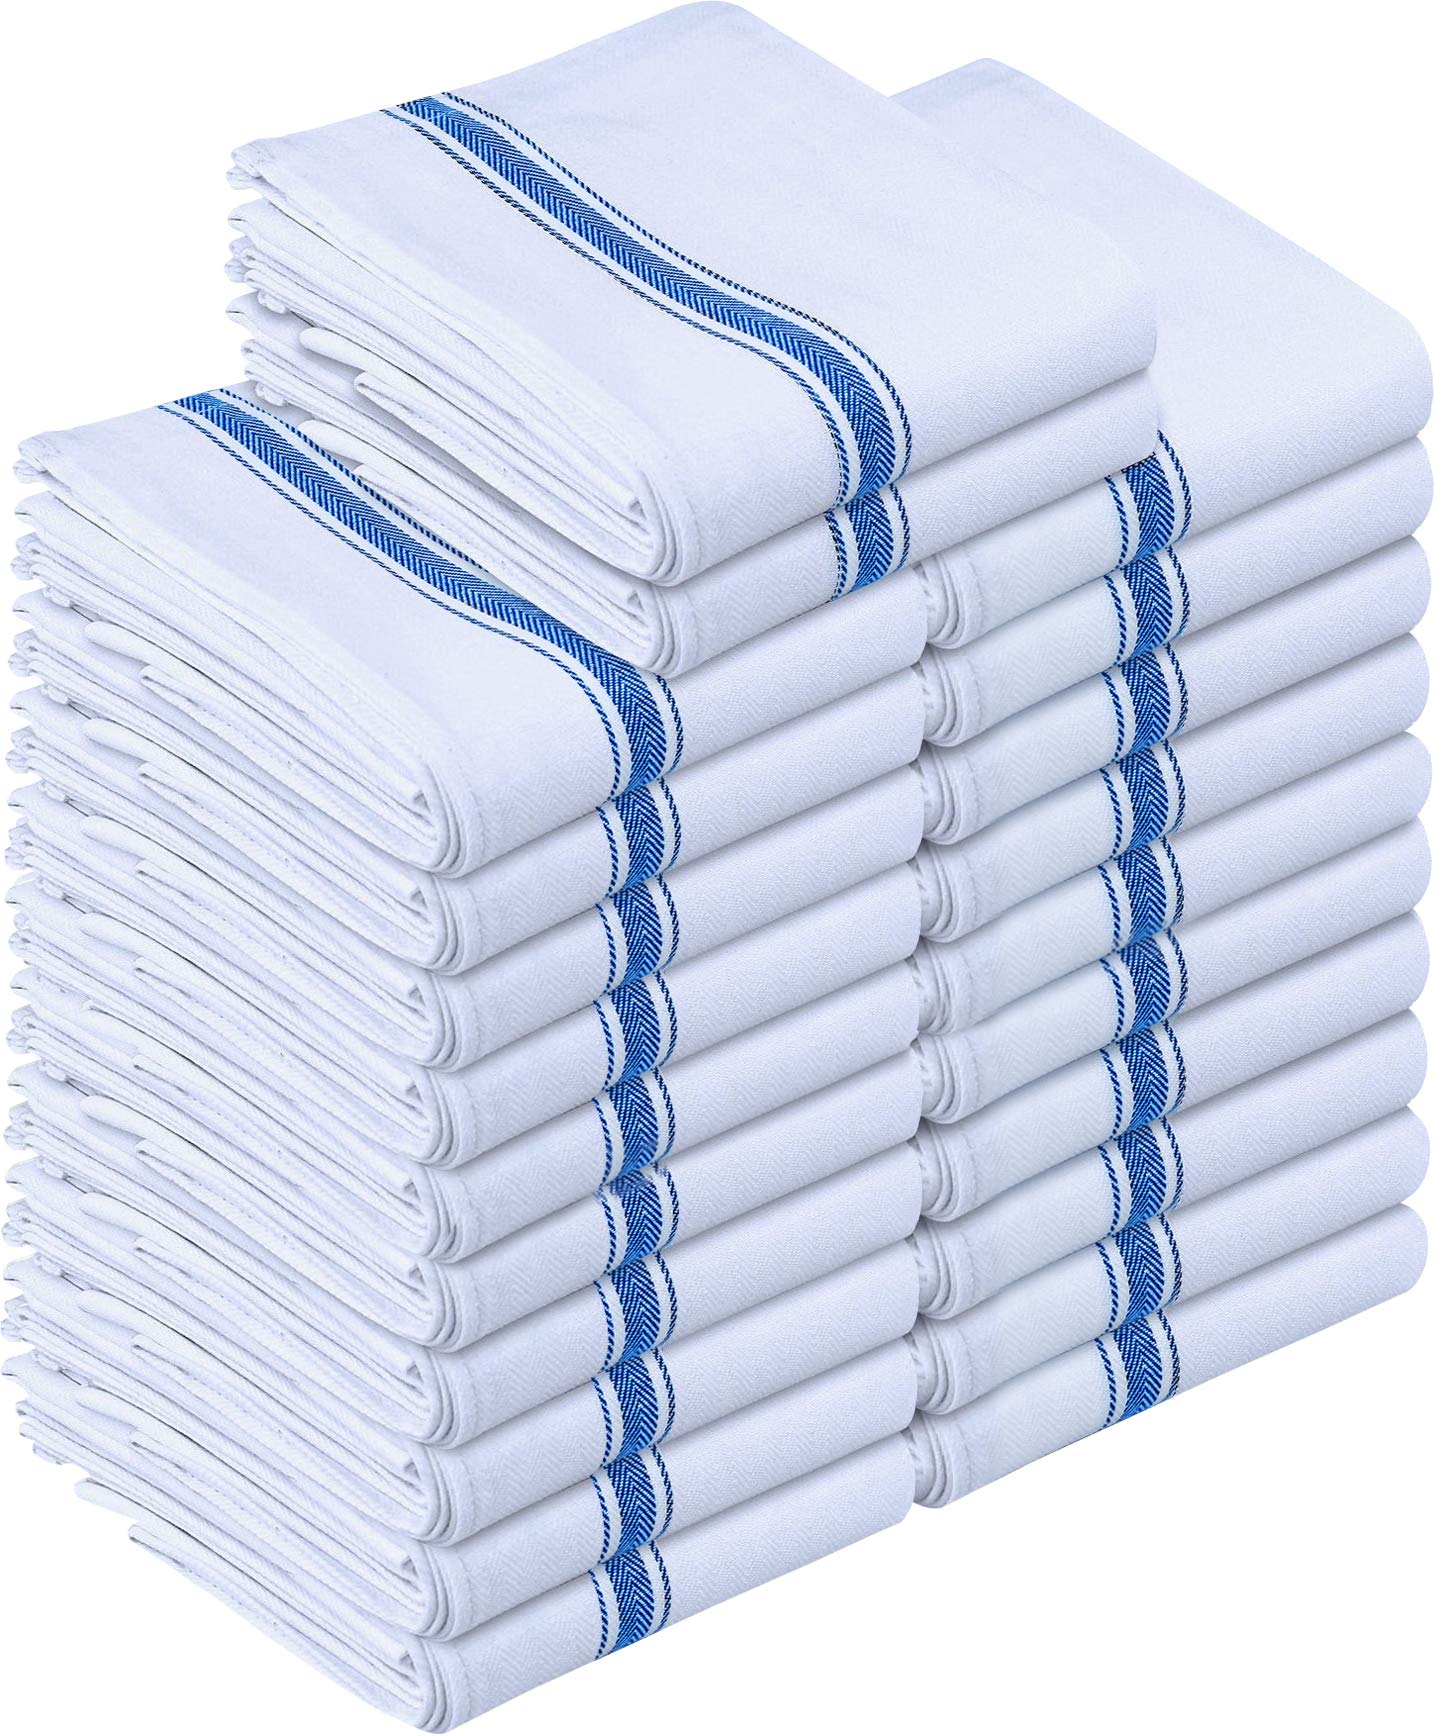 Utopia Towels Kitchen Towels 24 Pack, 15 x 25 Inches Cotton Dish Towels, Tea Towels and Bar Towels, Blue by Utopia Towels (Image #1)